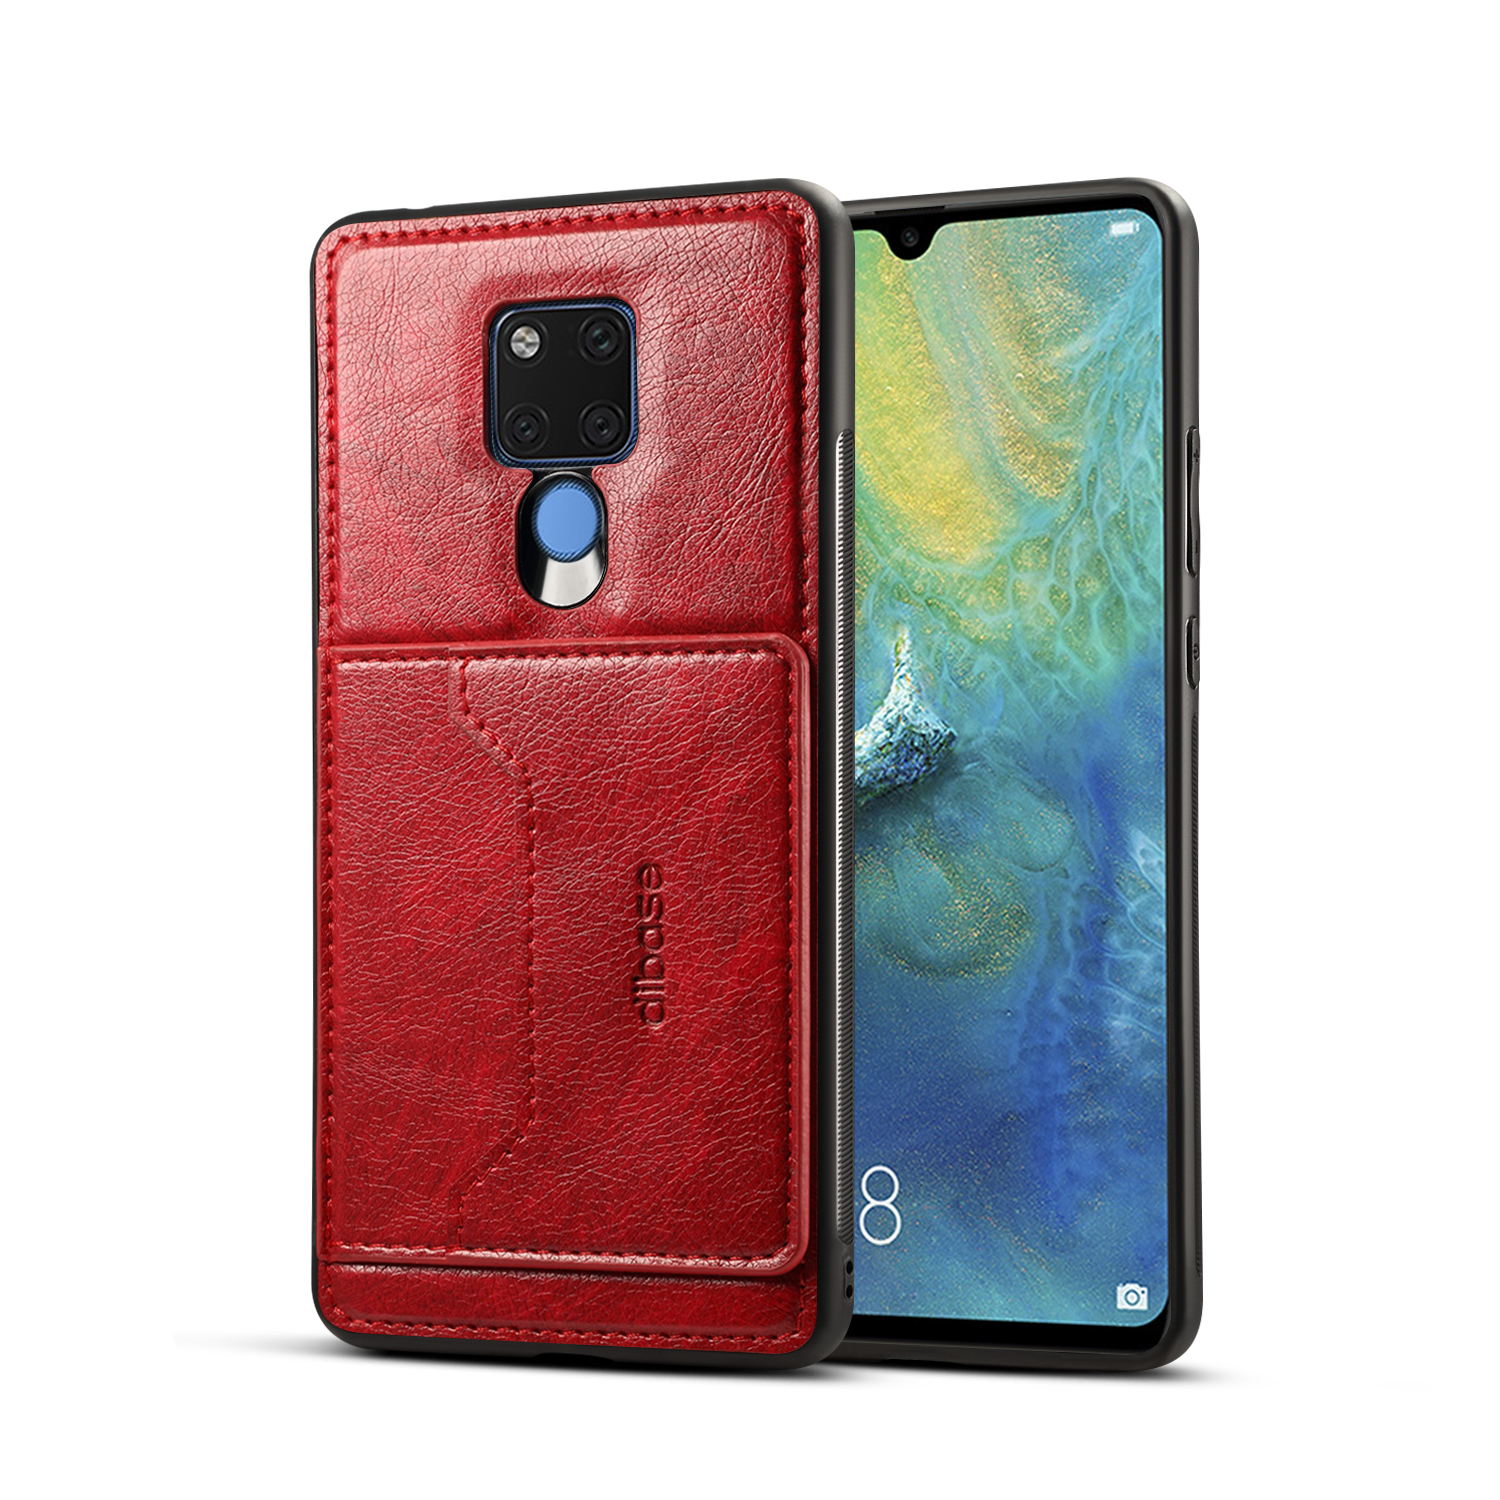 For HUAWEI MATE 20X 2 in 1 Retro PU Leather Wallet Stand Non-slip Shockproof Cell Phone Case red